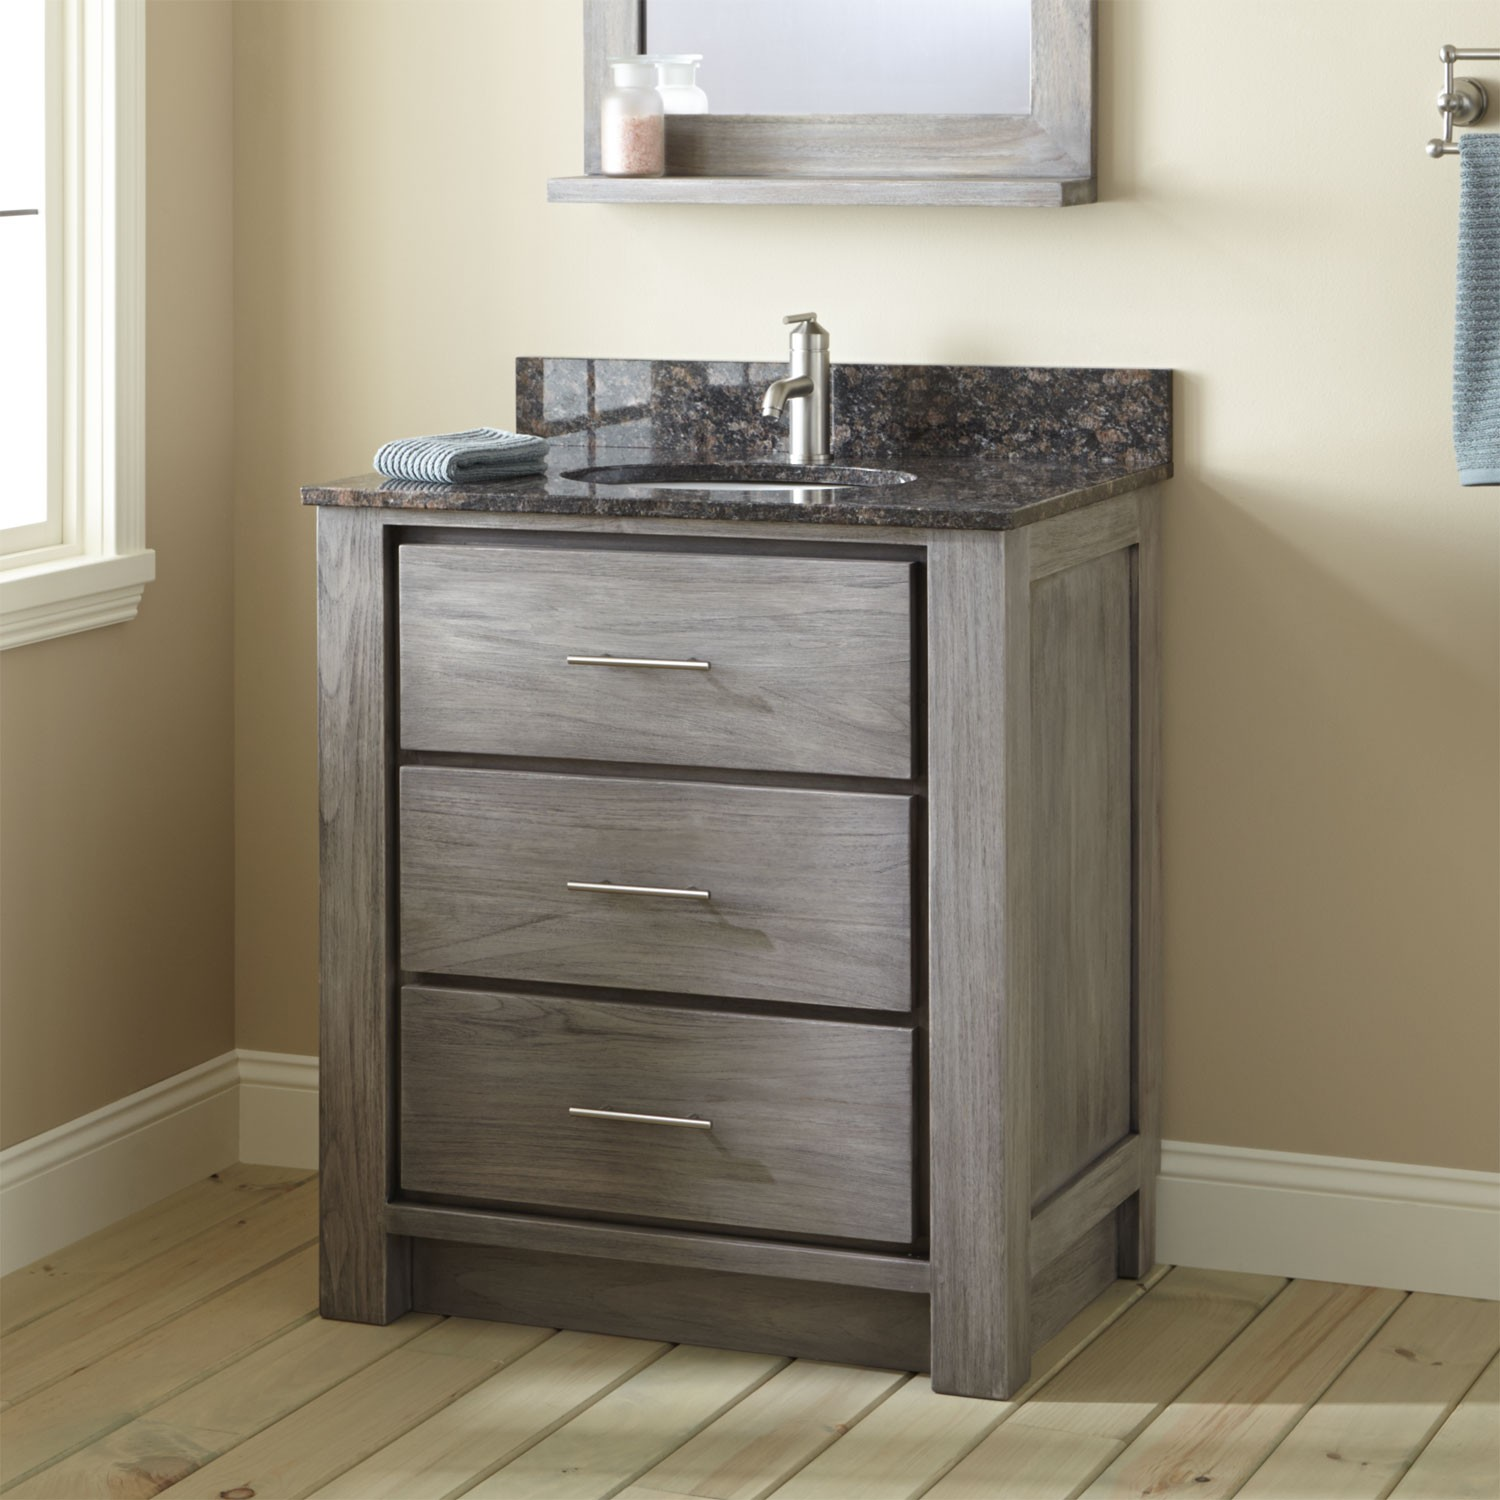 Small Bathroom Vanity Cabinets small bathroom vanity cabinets | eva furniture